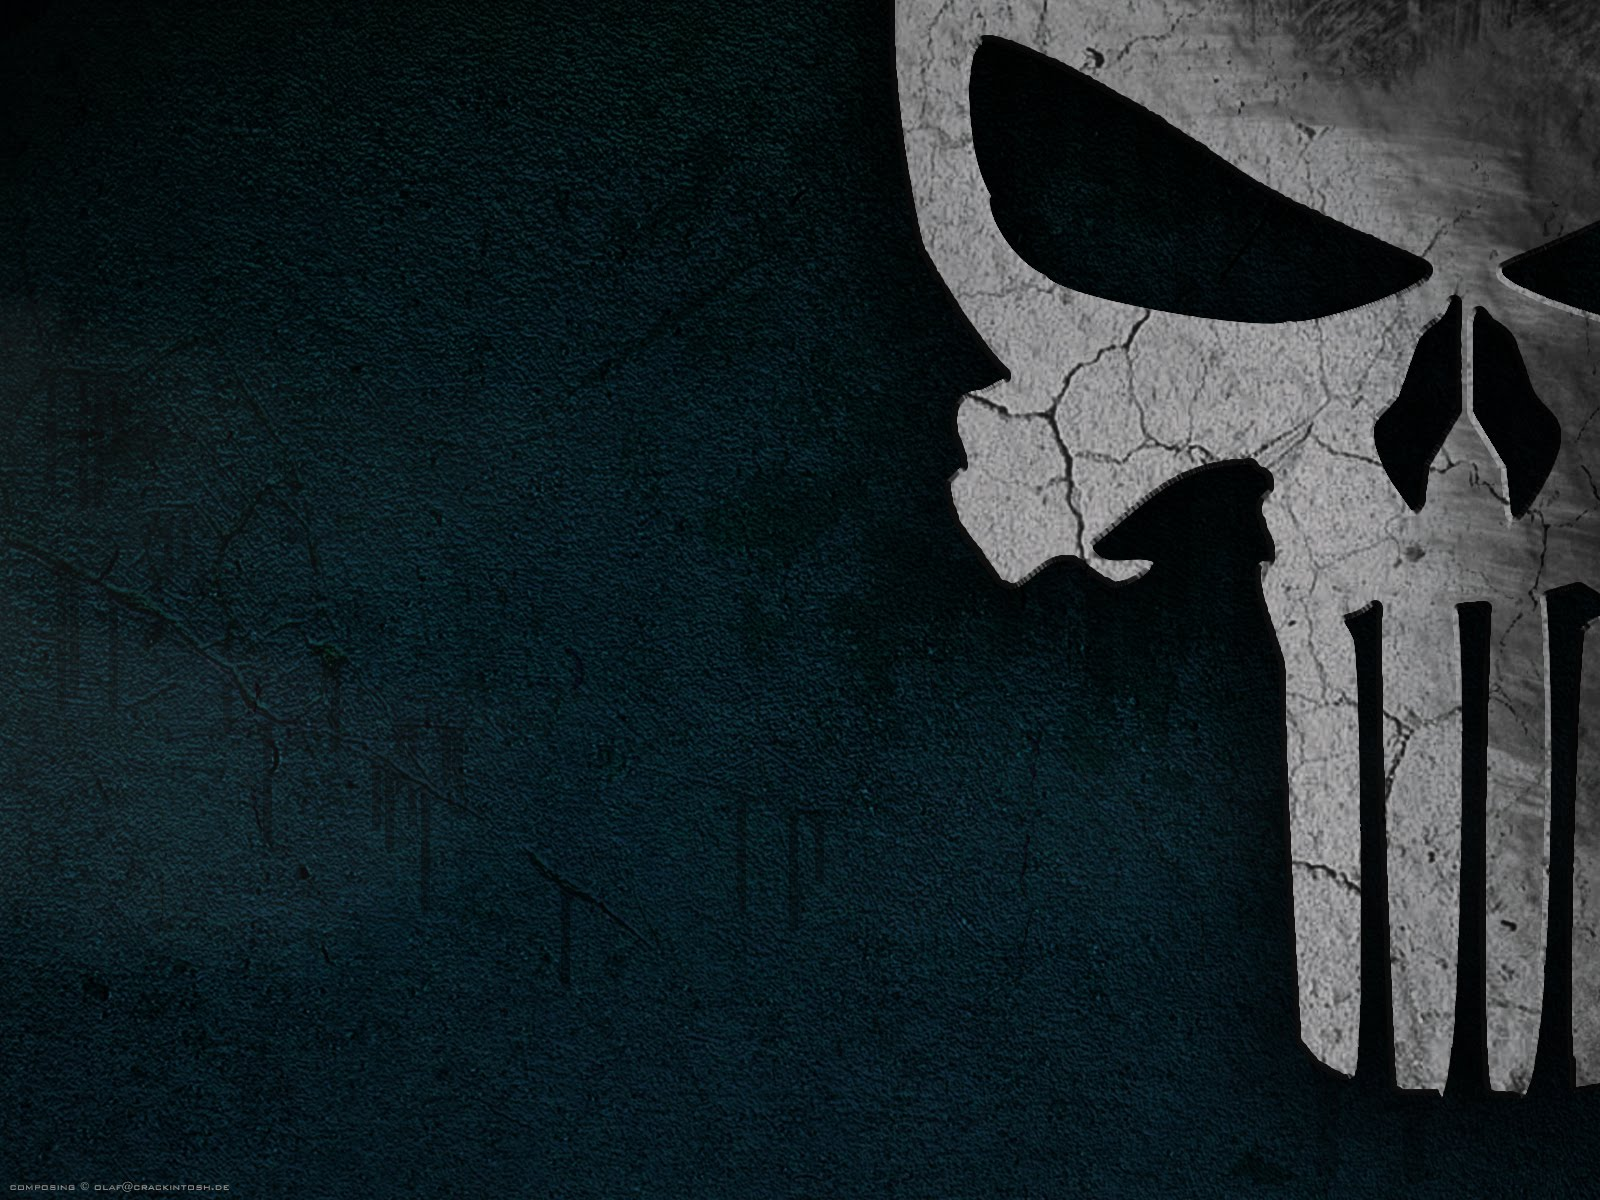 punisher skull wallpaper clickandseeworld is all about